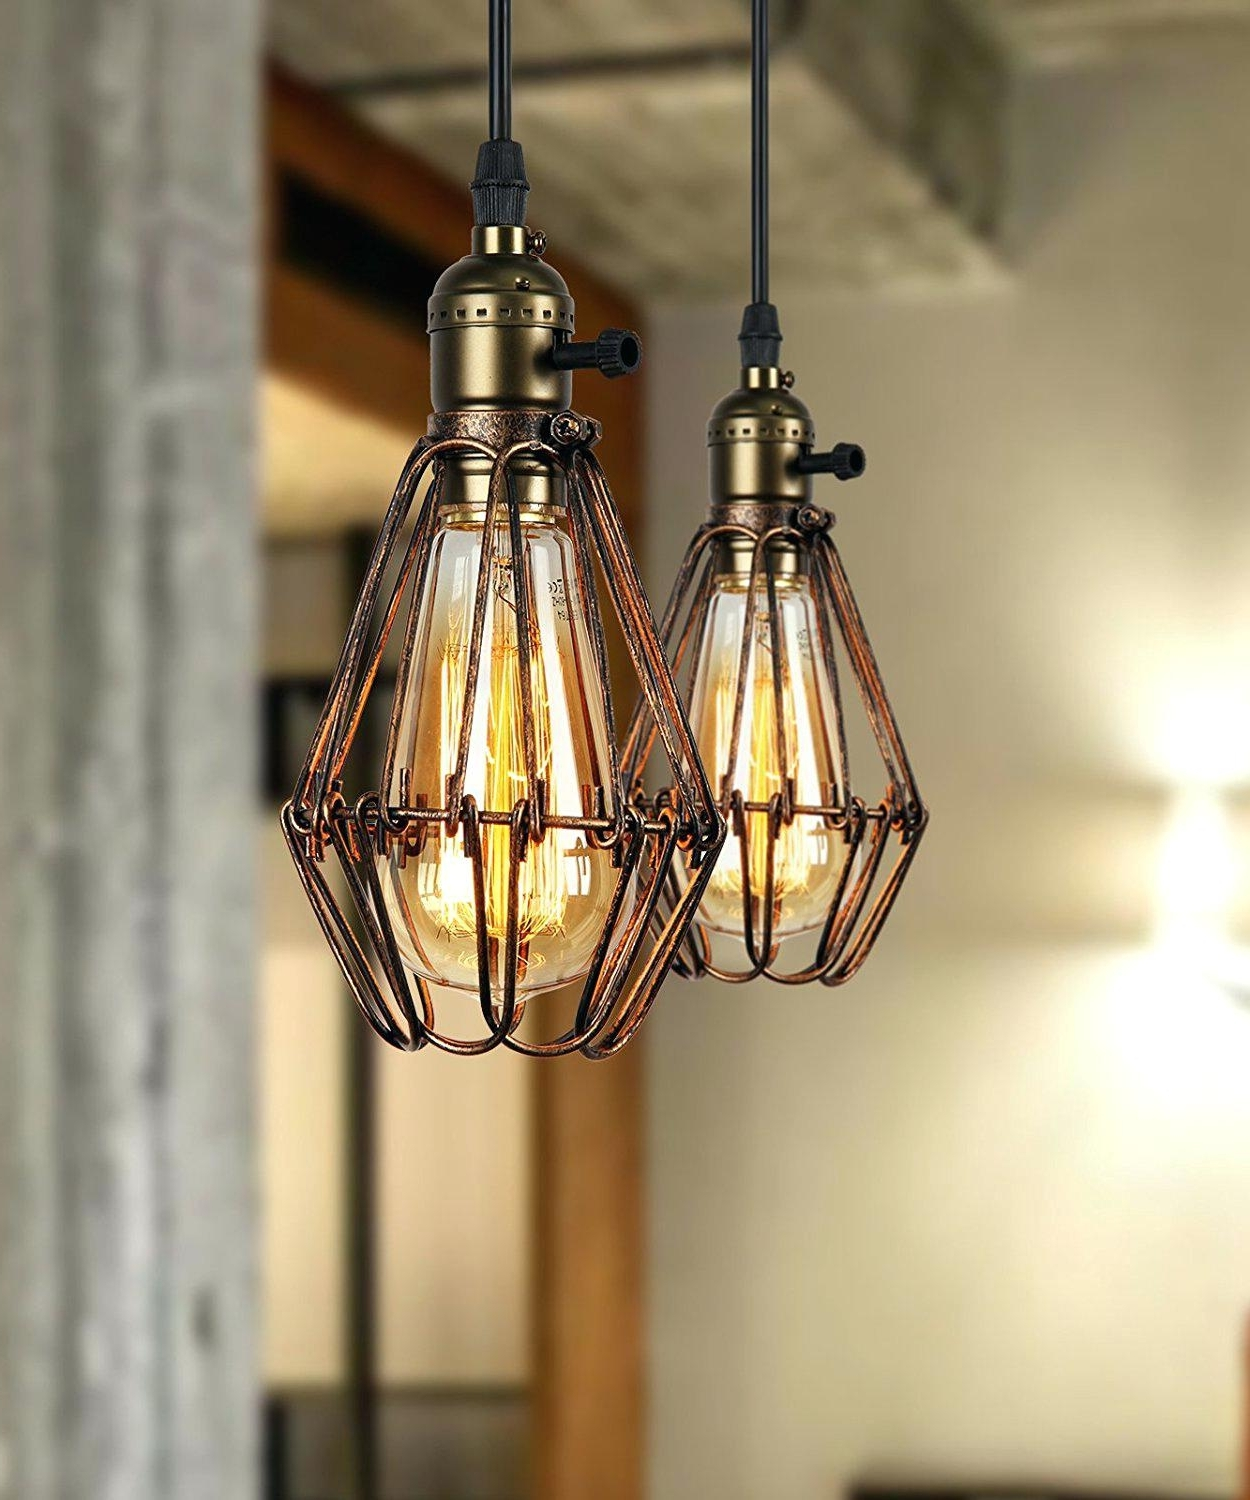 Outdoor Hanging Light Lights Amazon Lamps Home Depot – Lapland Inside 2018 Outdoor Hanging Lanterns At Amazon (View 14 of 20)